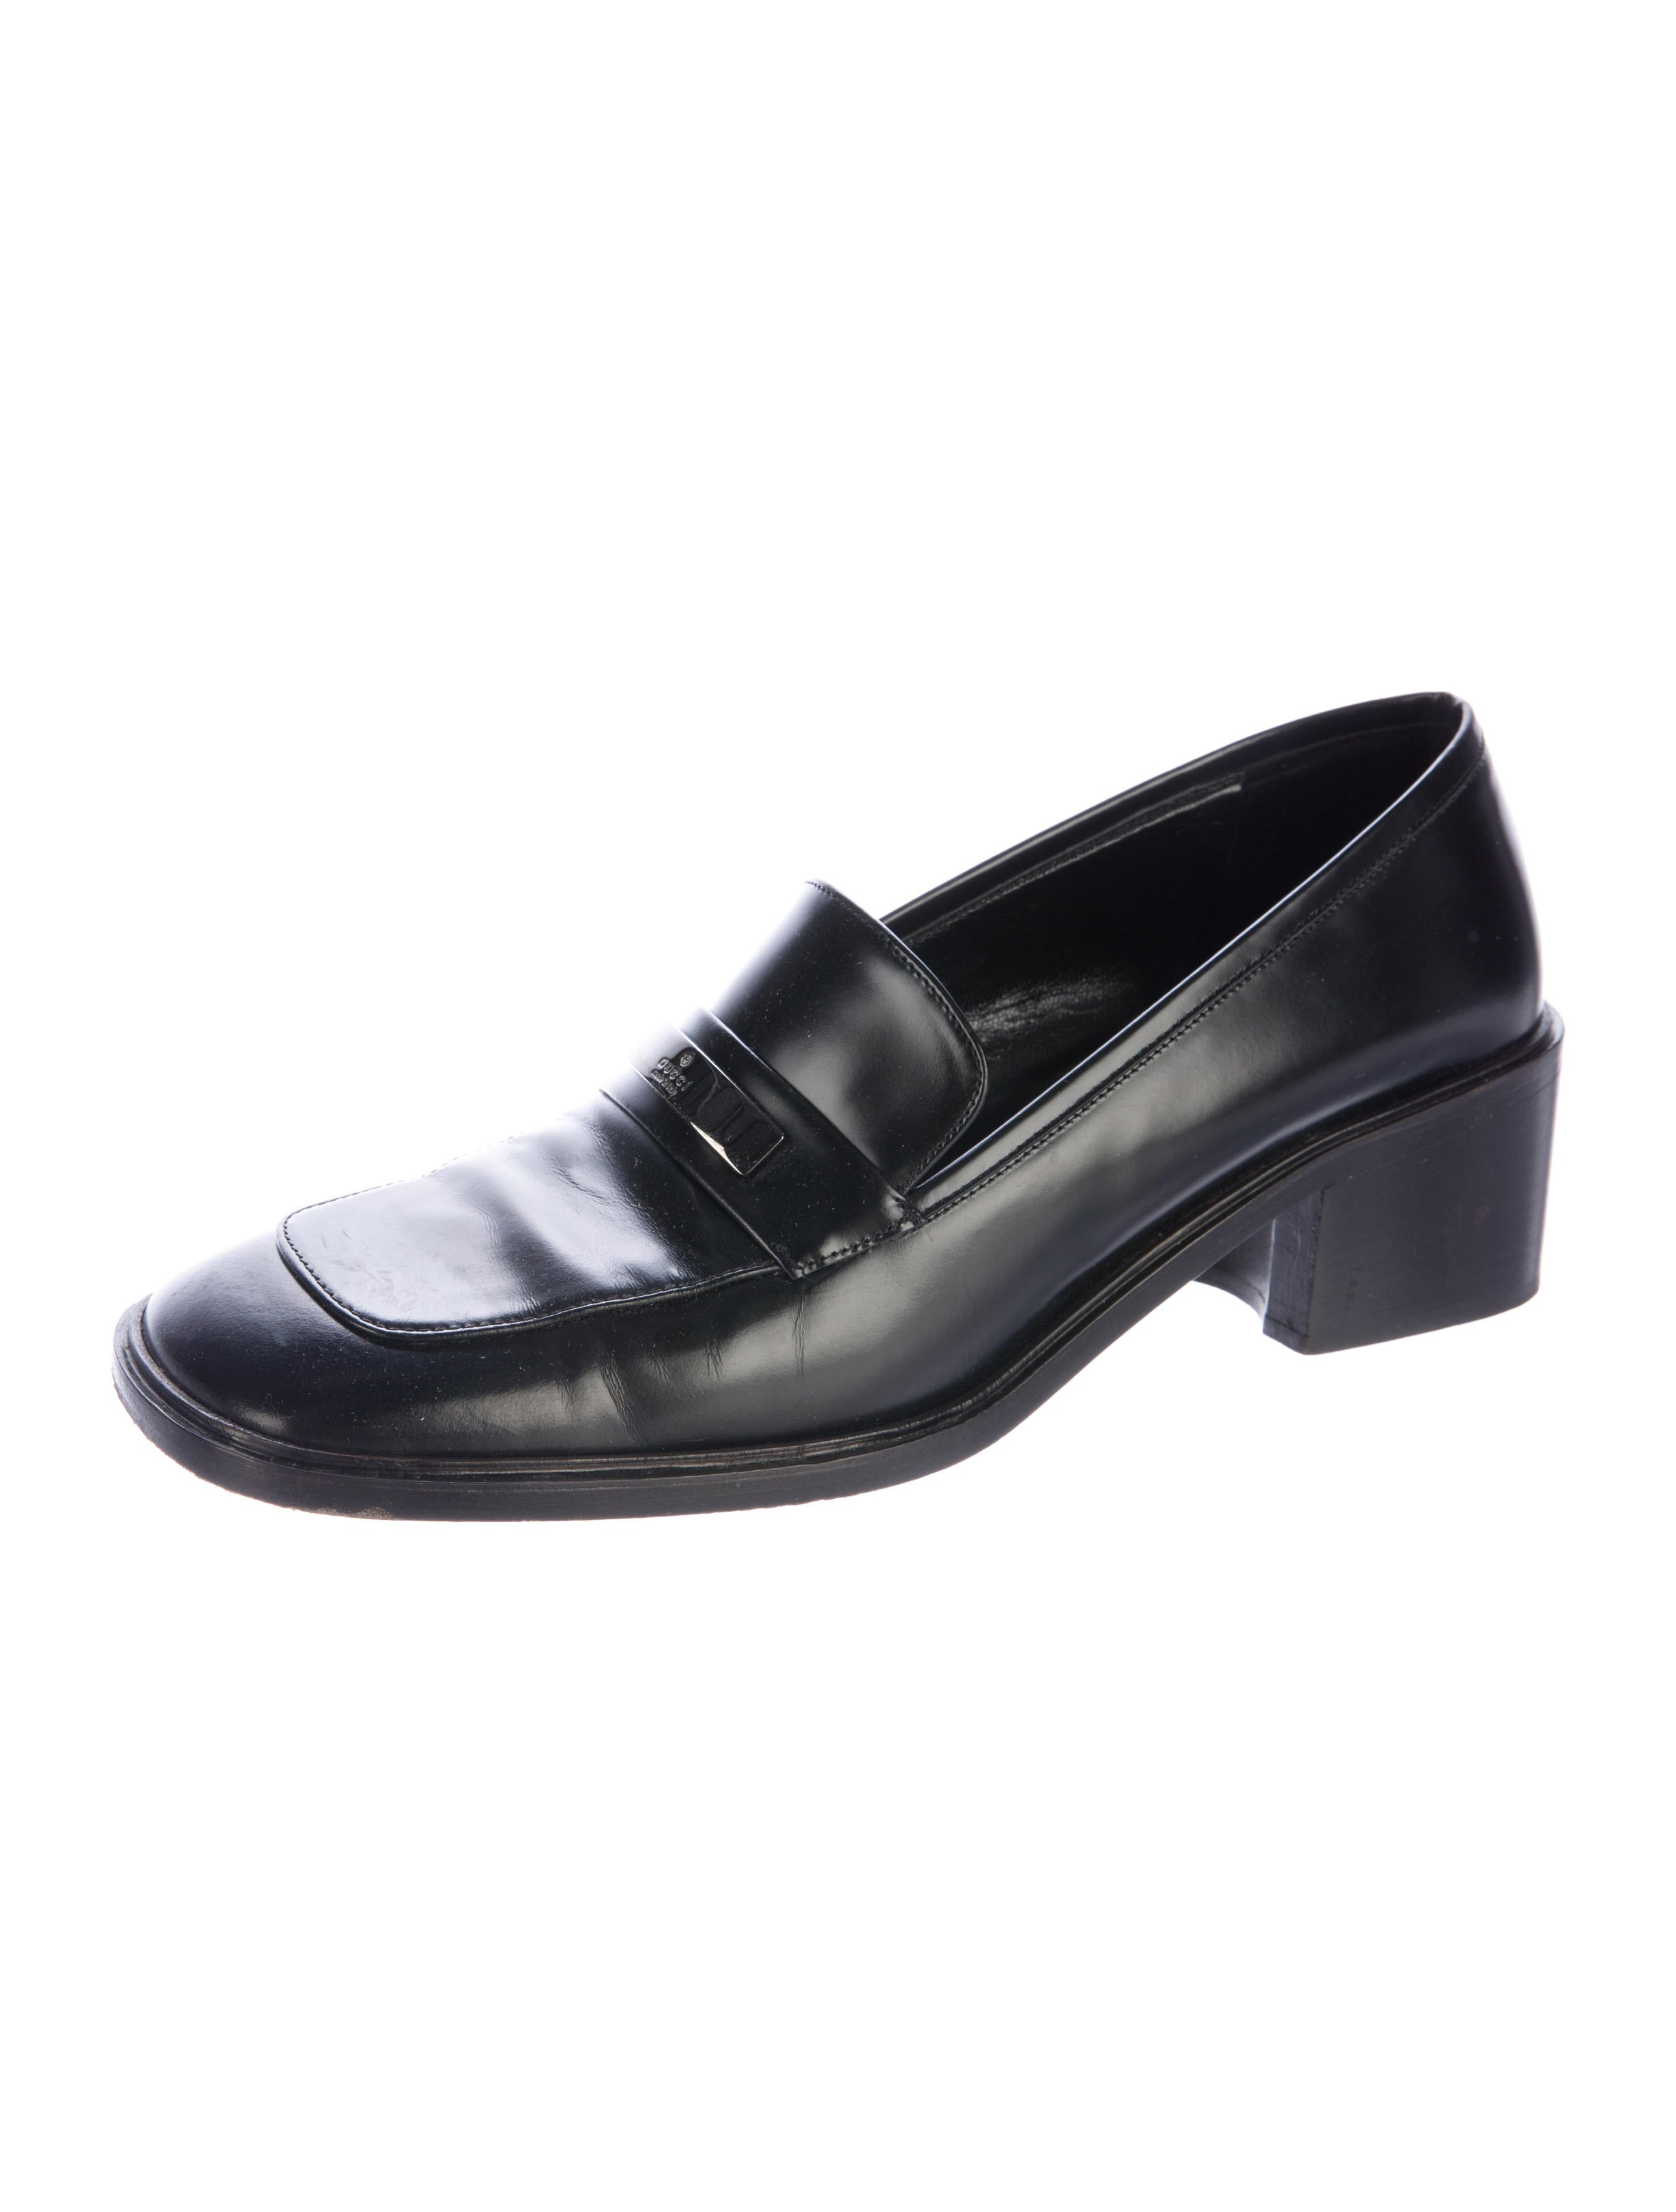 A dress shoe (U.S. English) is a shoe to be worn at smart casual or more formal events. A dress shoe is typically contrasted to an athletic shoe. Dress shoes are worn by many as their standard daily shoes, and are widely used in dance, for parties, and for special occasions.